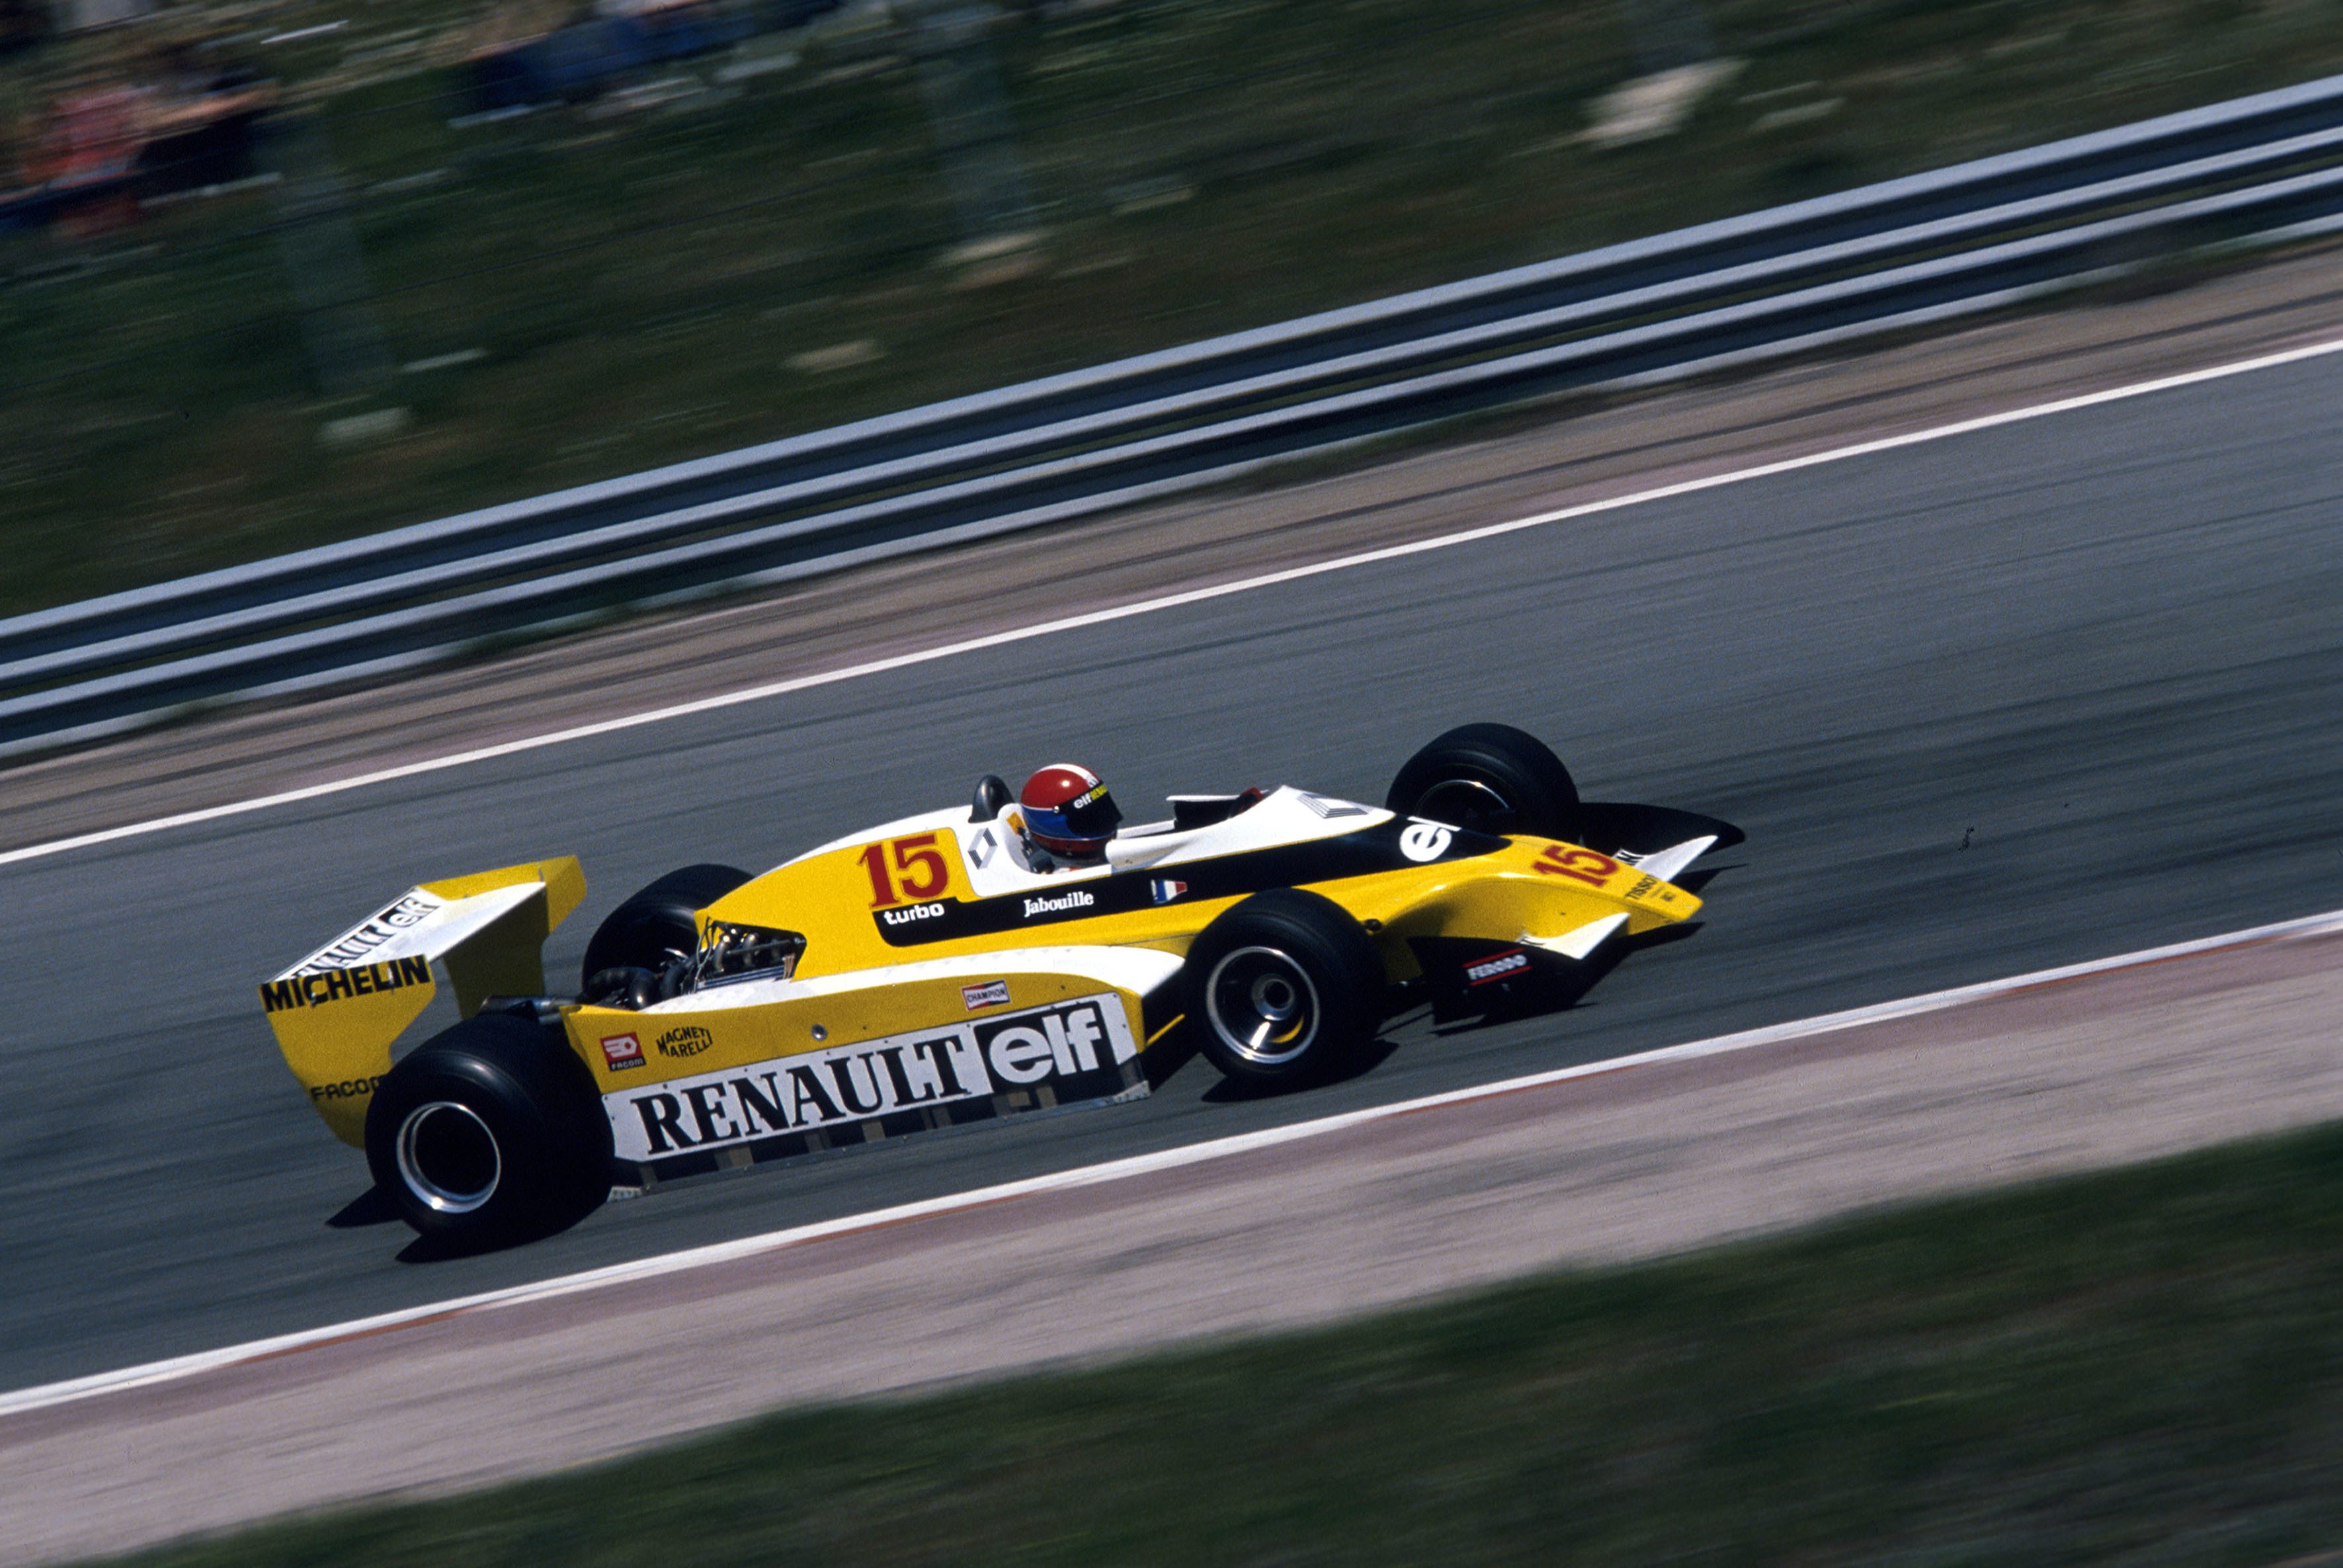 cars formula one Renault HD Wallpaper